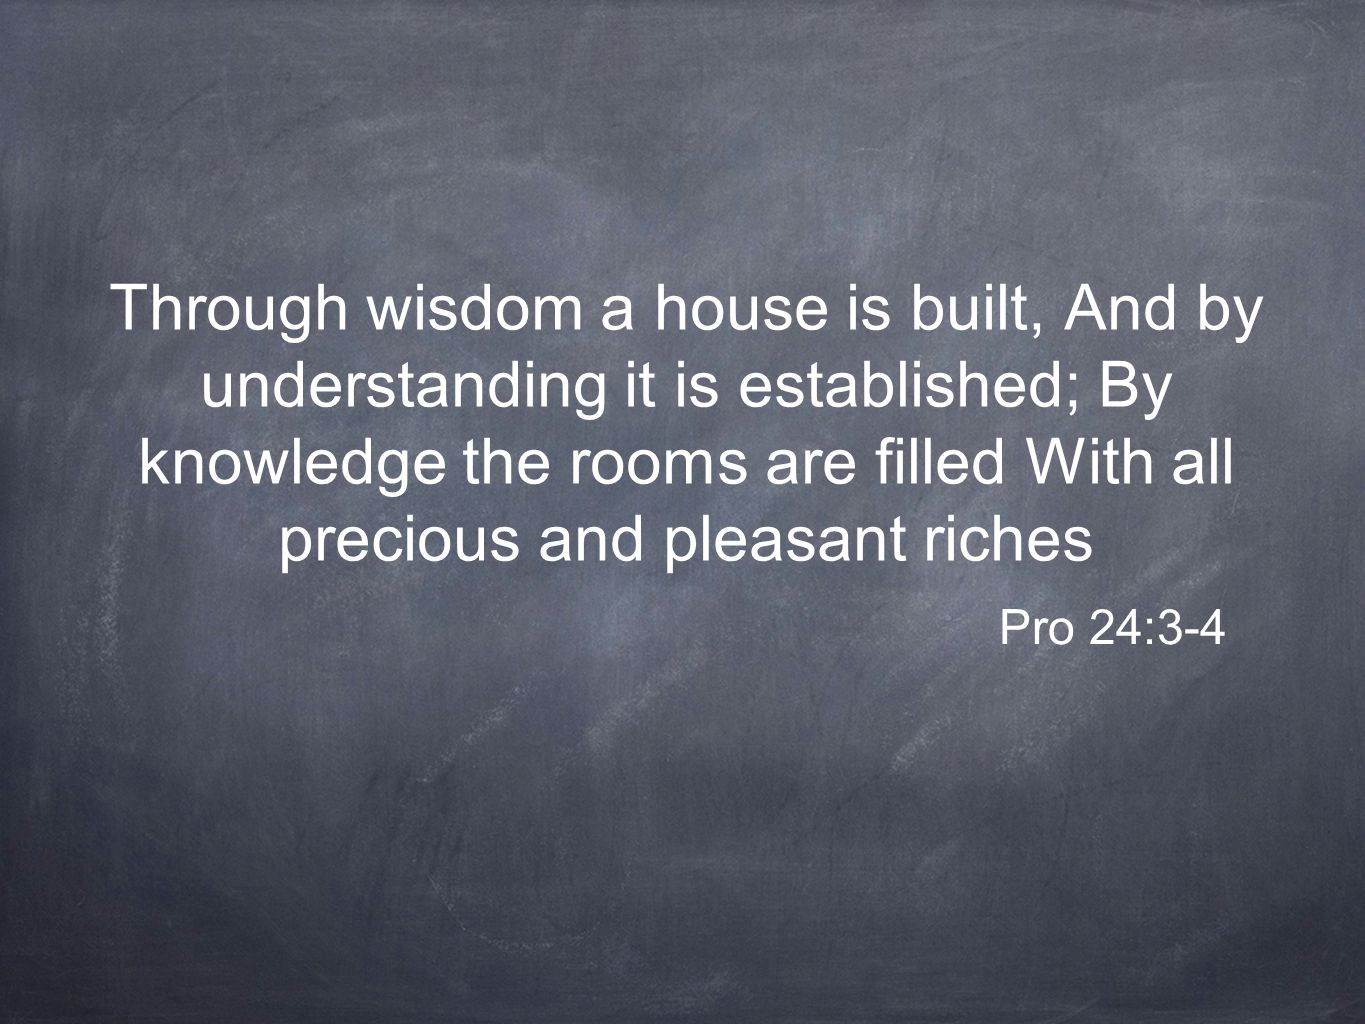 Through wisdom a house is built, And by understanding it is established; By knowledge the rooms are filled With all precious and pleasant riches Pro 24:3-4